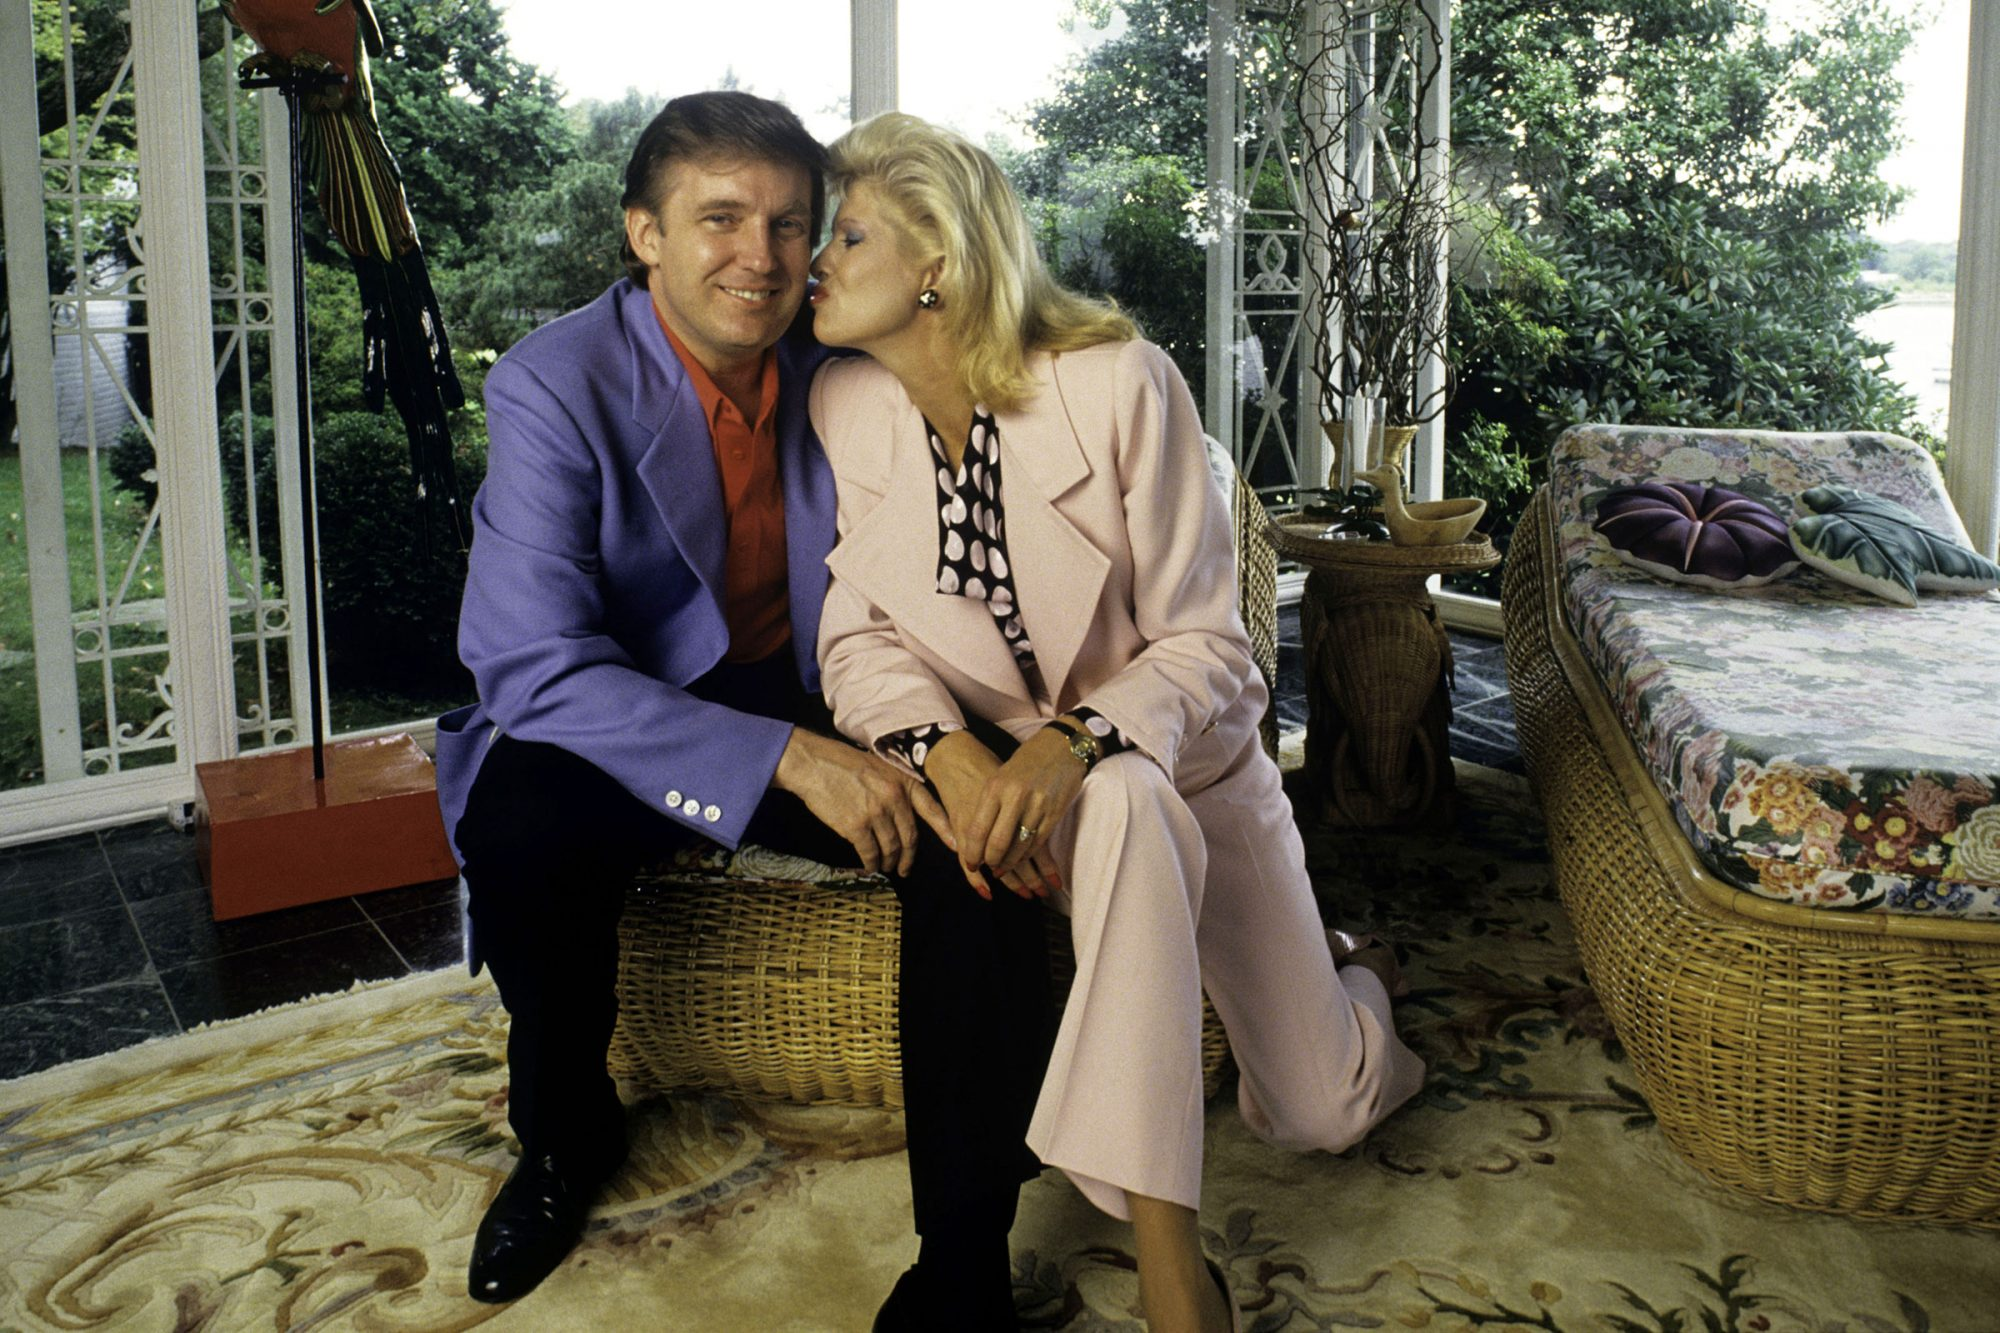 Donald Trump, real estate mogul, entrepreneur, and billionare, relaxes at his home with his wife, Ivana Trump